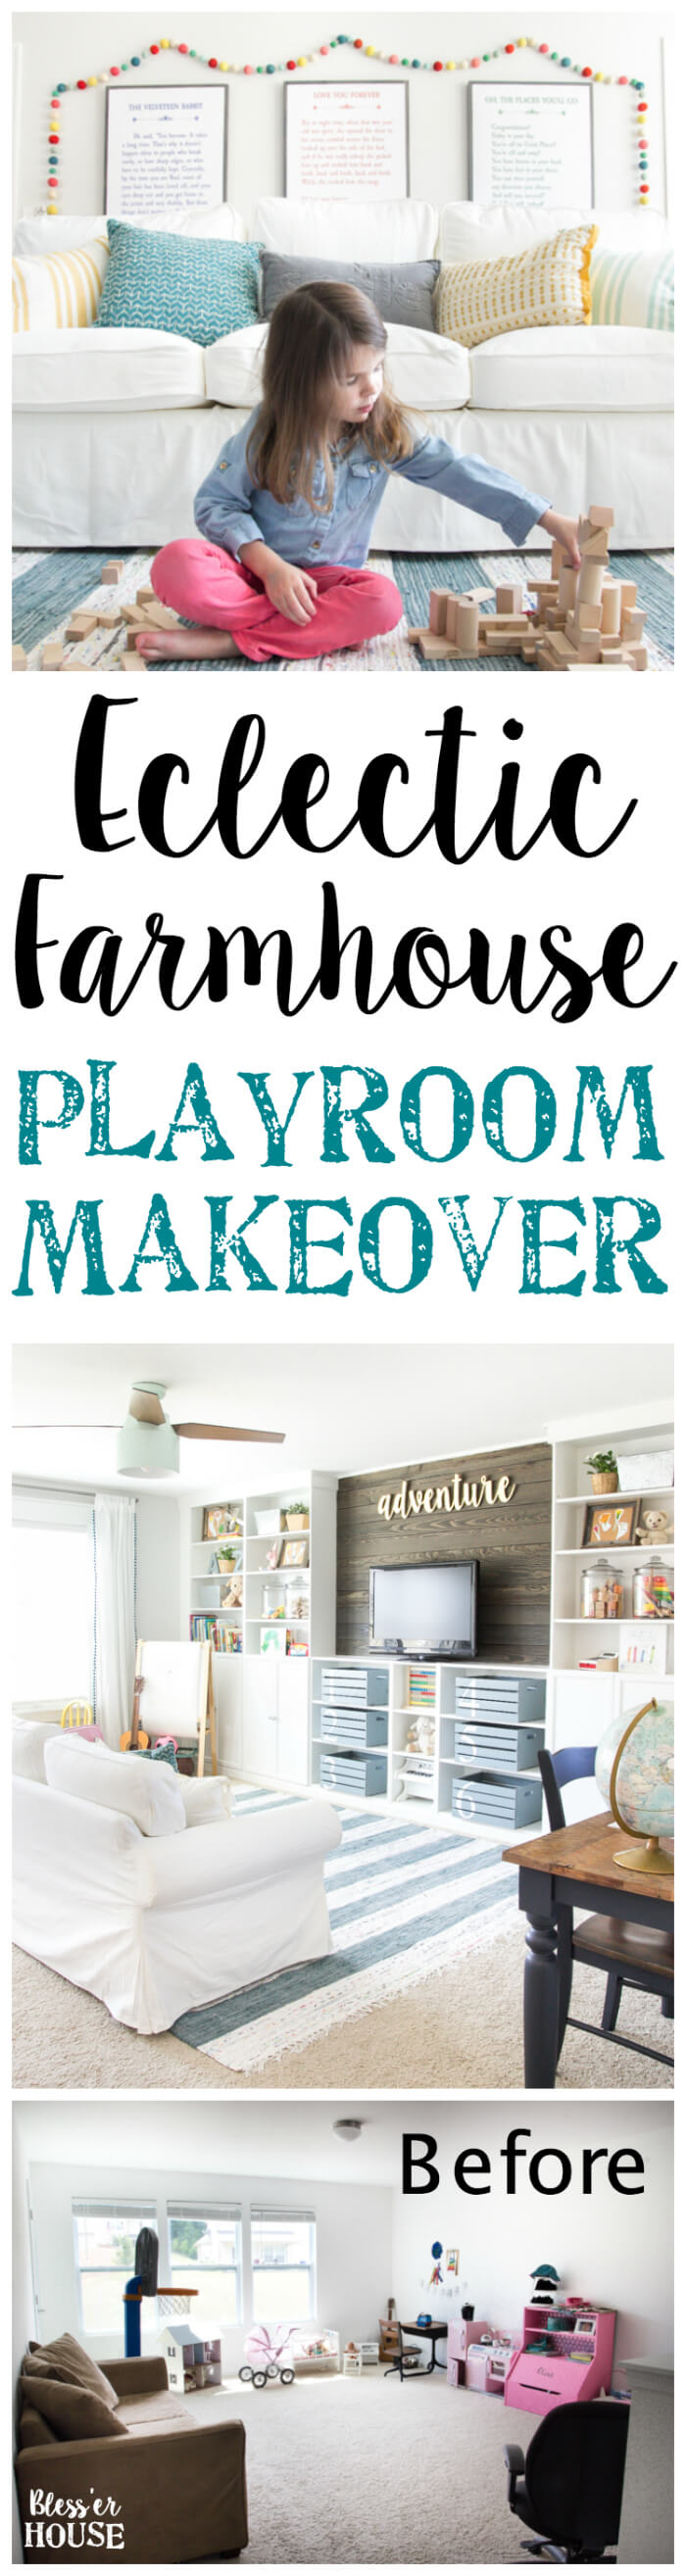 Give Aspiring Designers a Chic Playroom